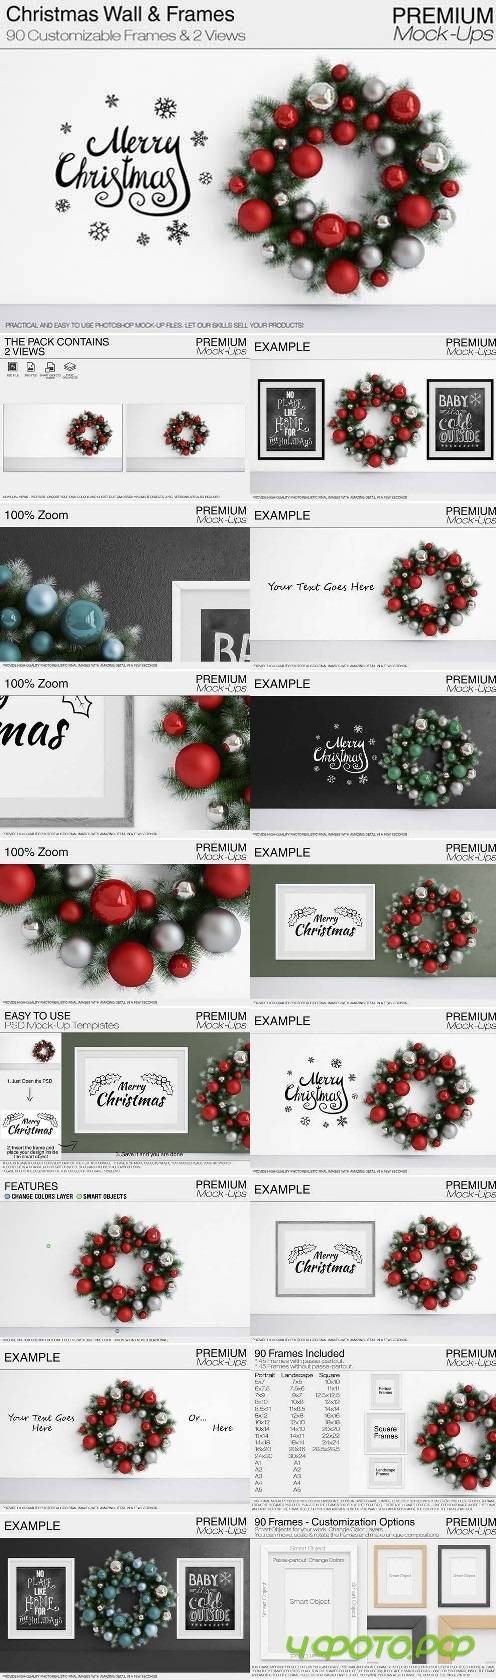 Christmas Wall and Frames Mockup Set 2054928